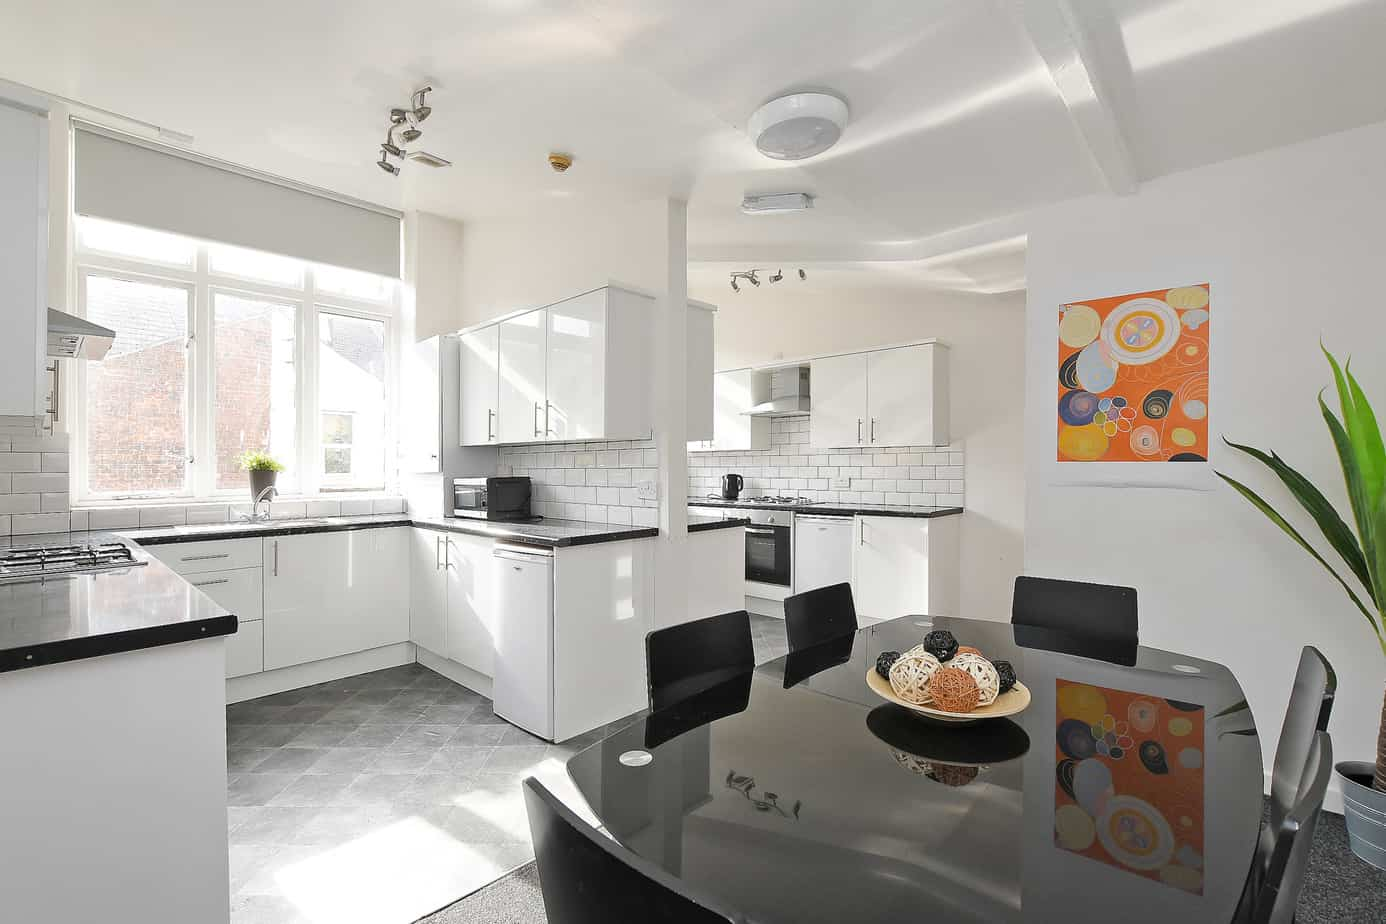 Wesley House – 7 Bed Student Home